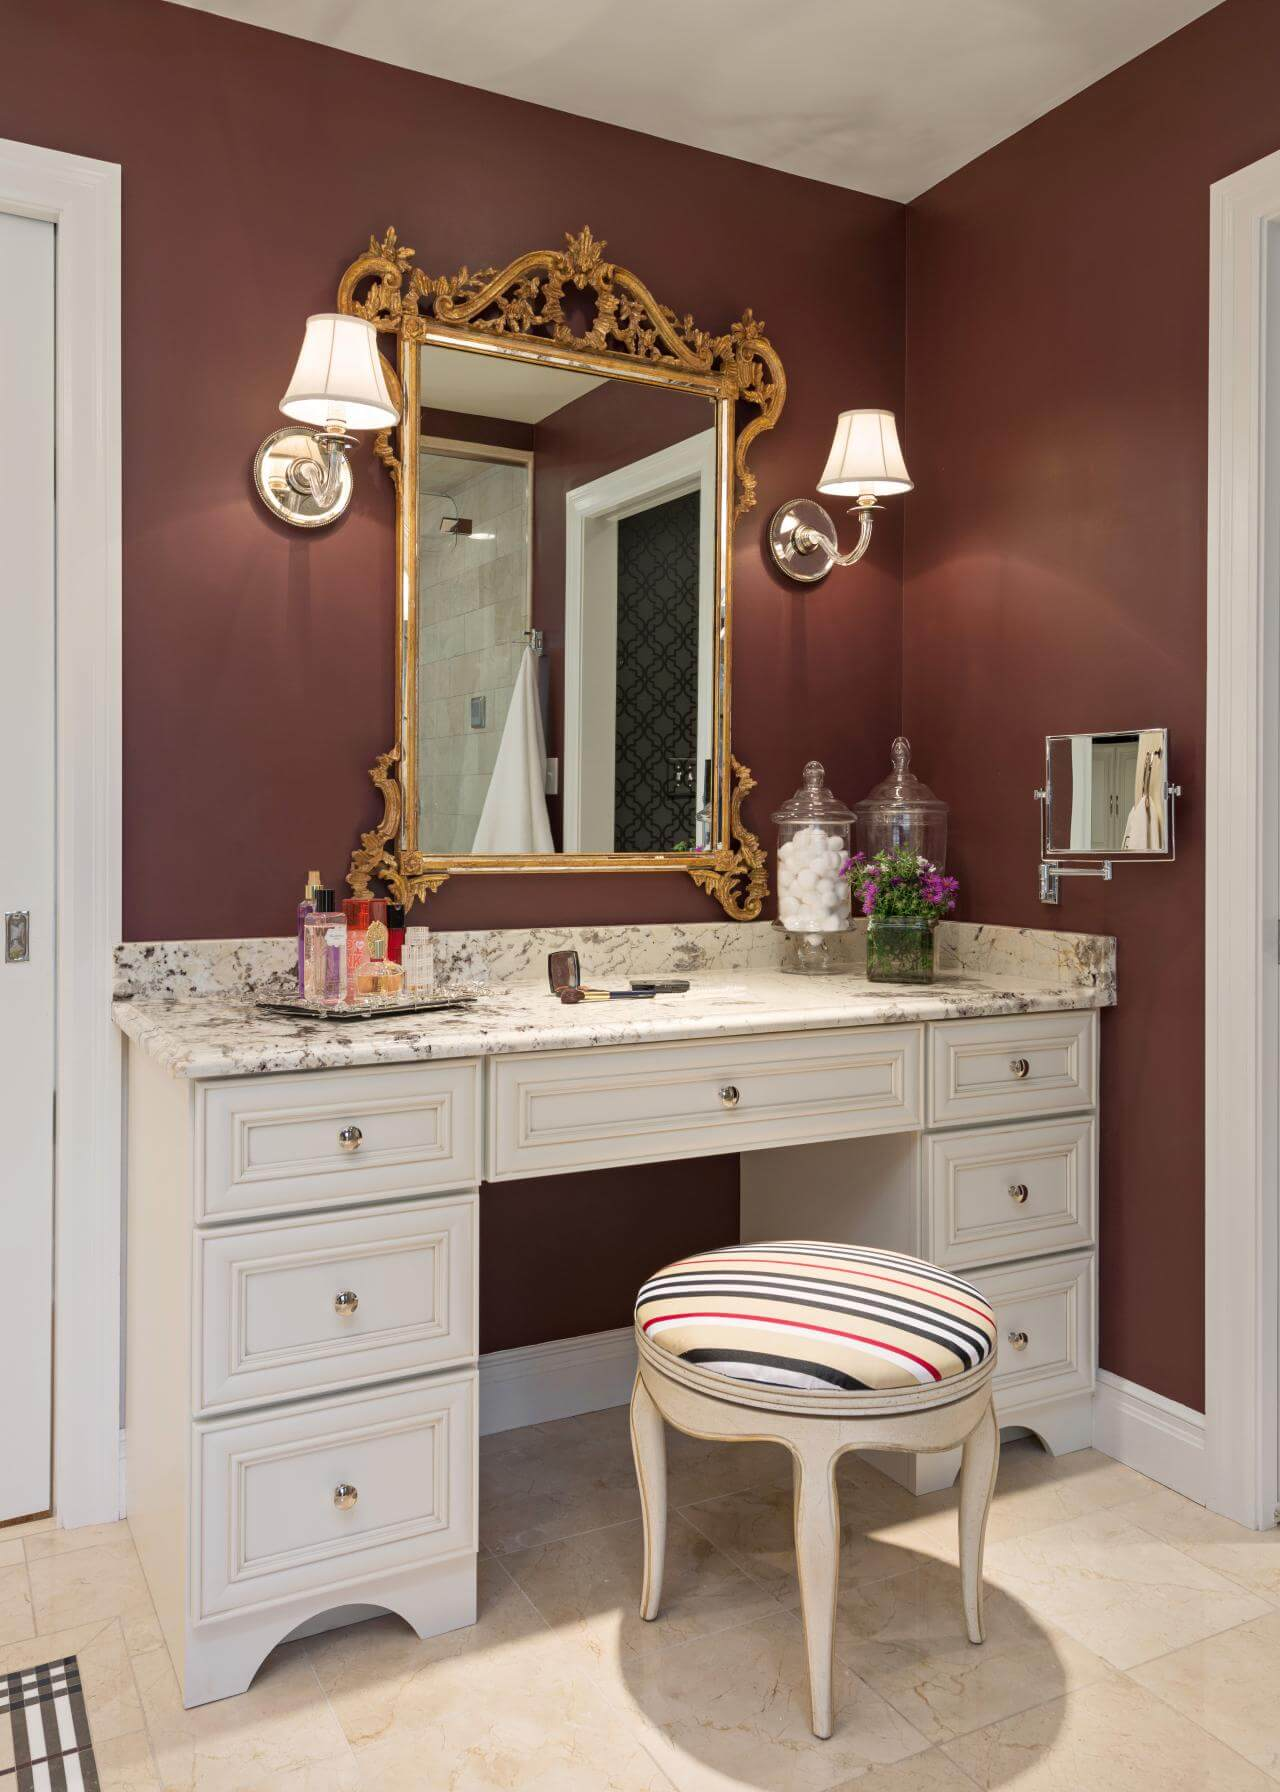 15 stunning makeup vanity decor ideas style motivation for Vanity bathroom ideas